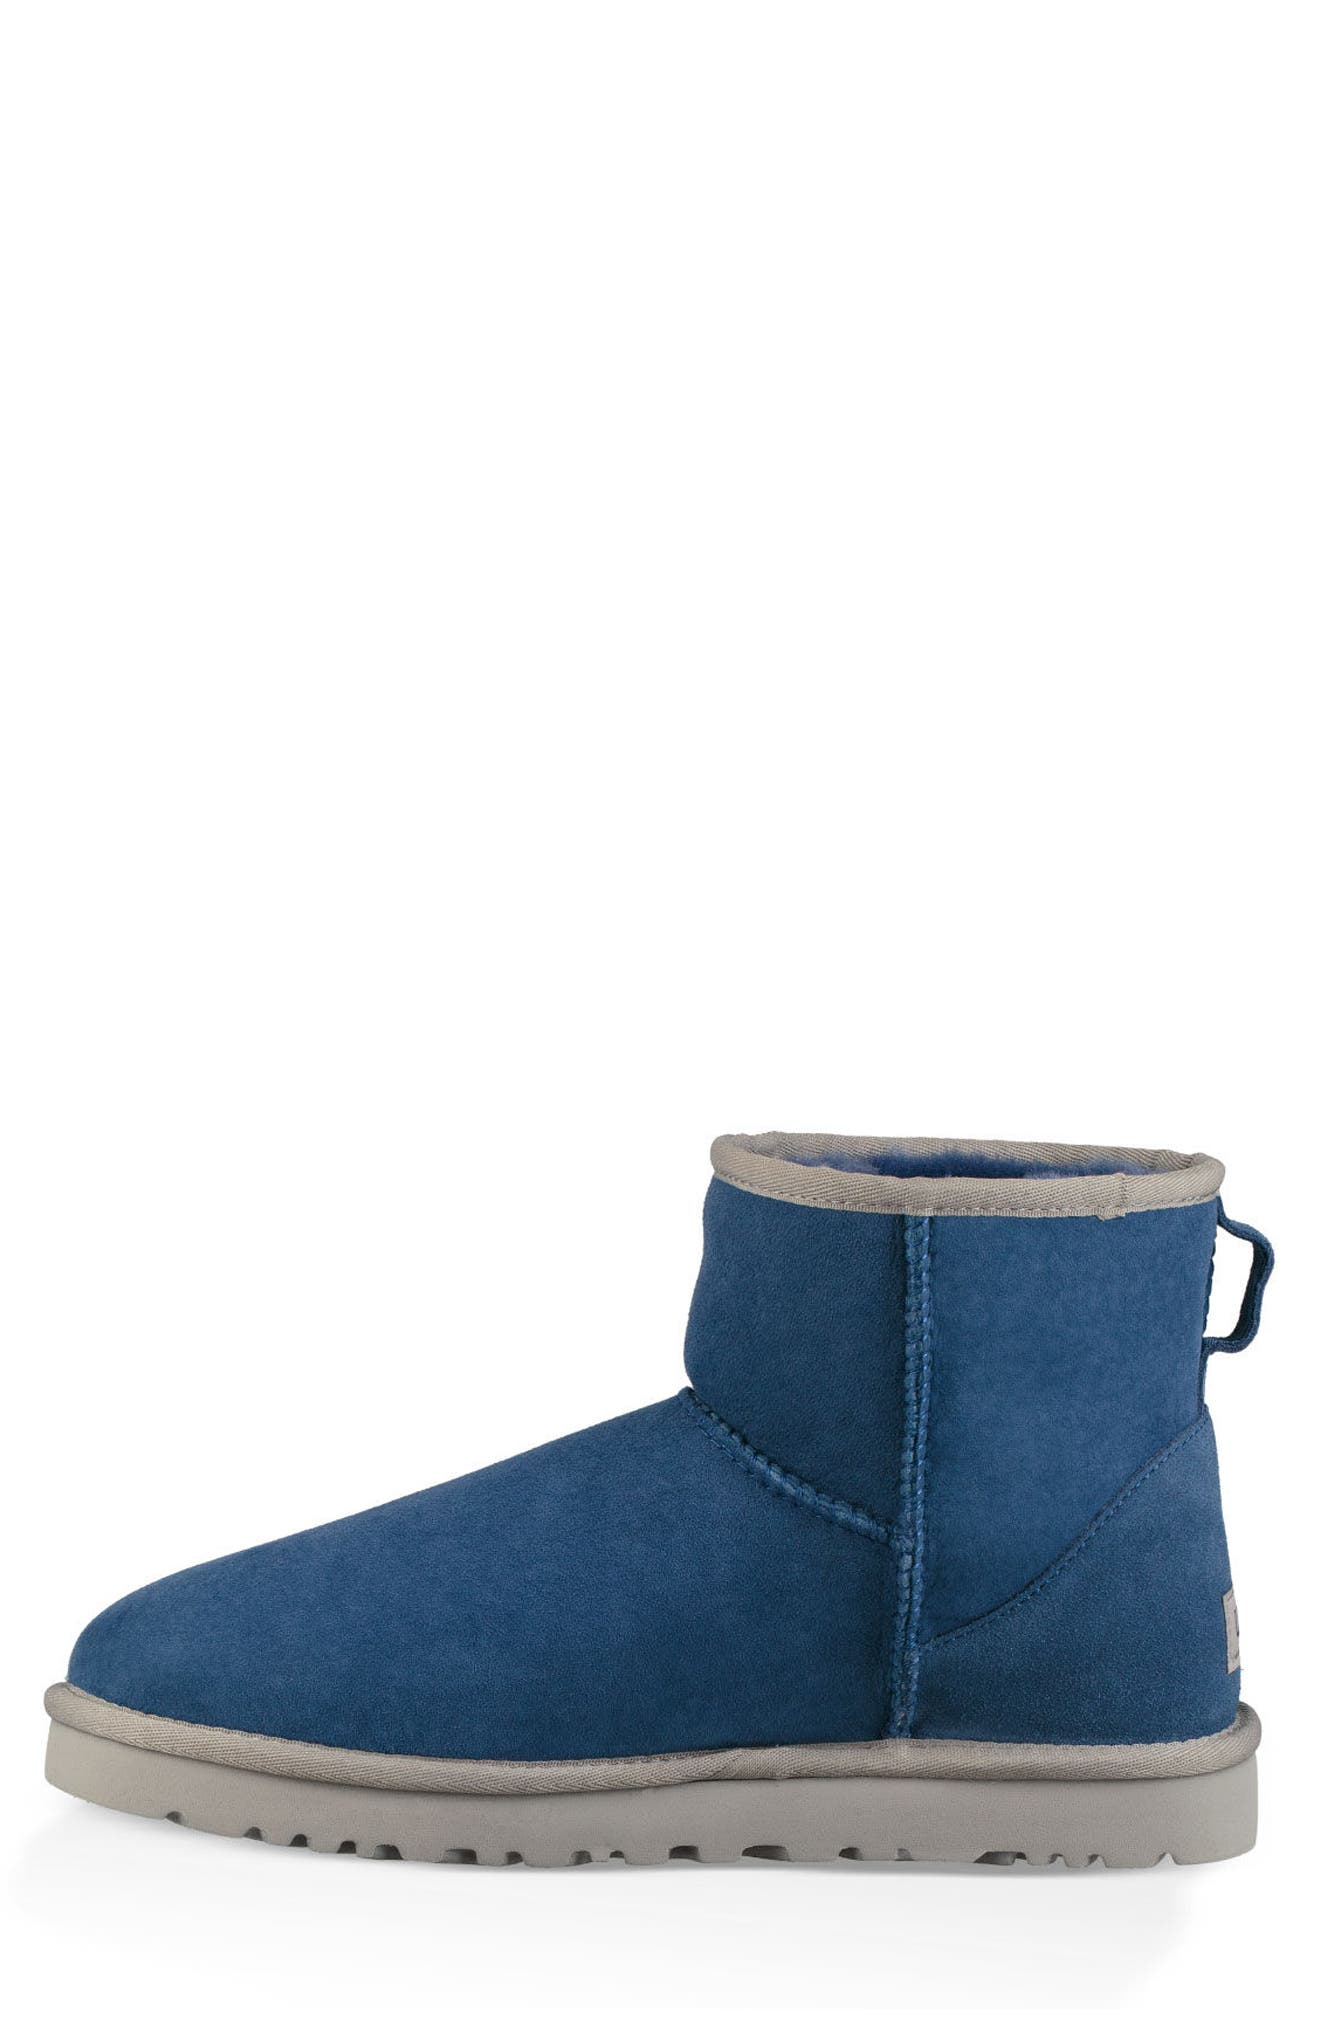 Classic Mini Boot,                             Alternate thumbnail 3, color,                             BLUE